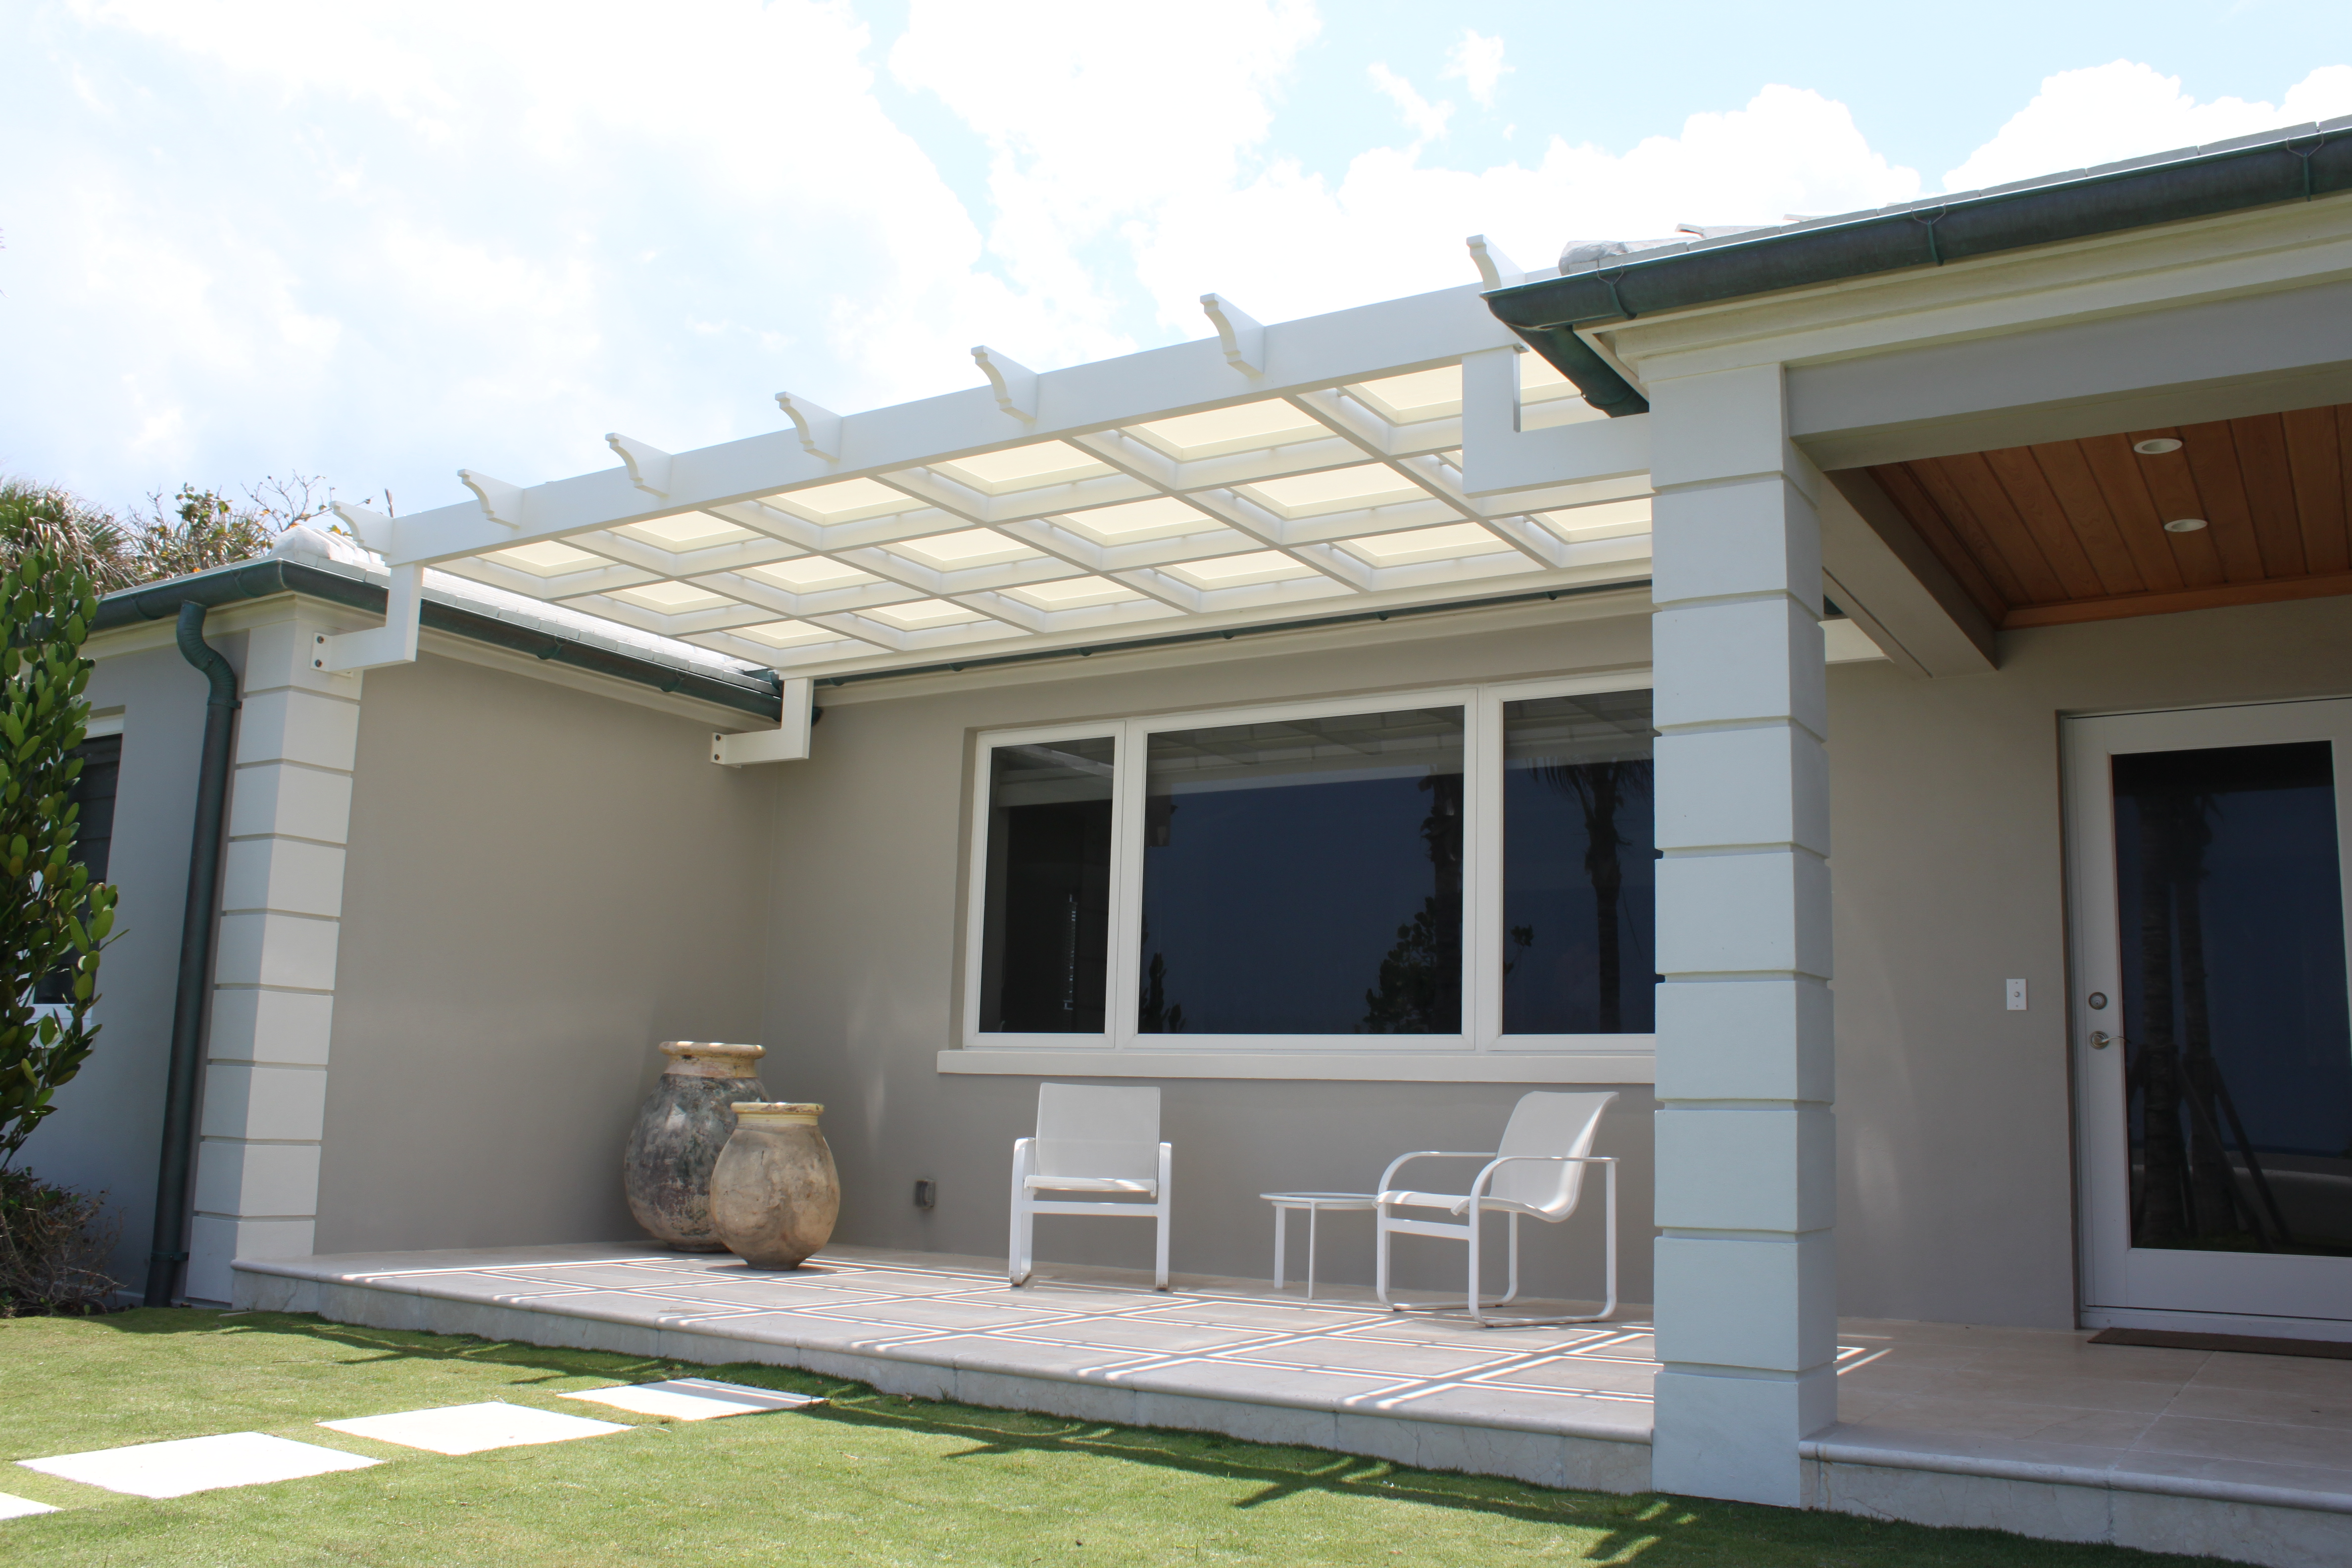 often includes existing are with or awning from storefront to awnings structures carports styling installation metal match aluminum company support delta products tent constructed sales